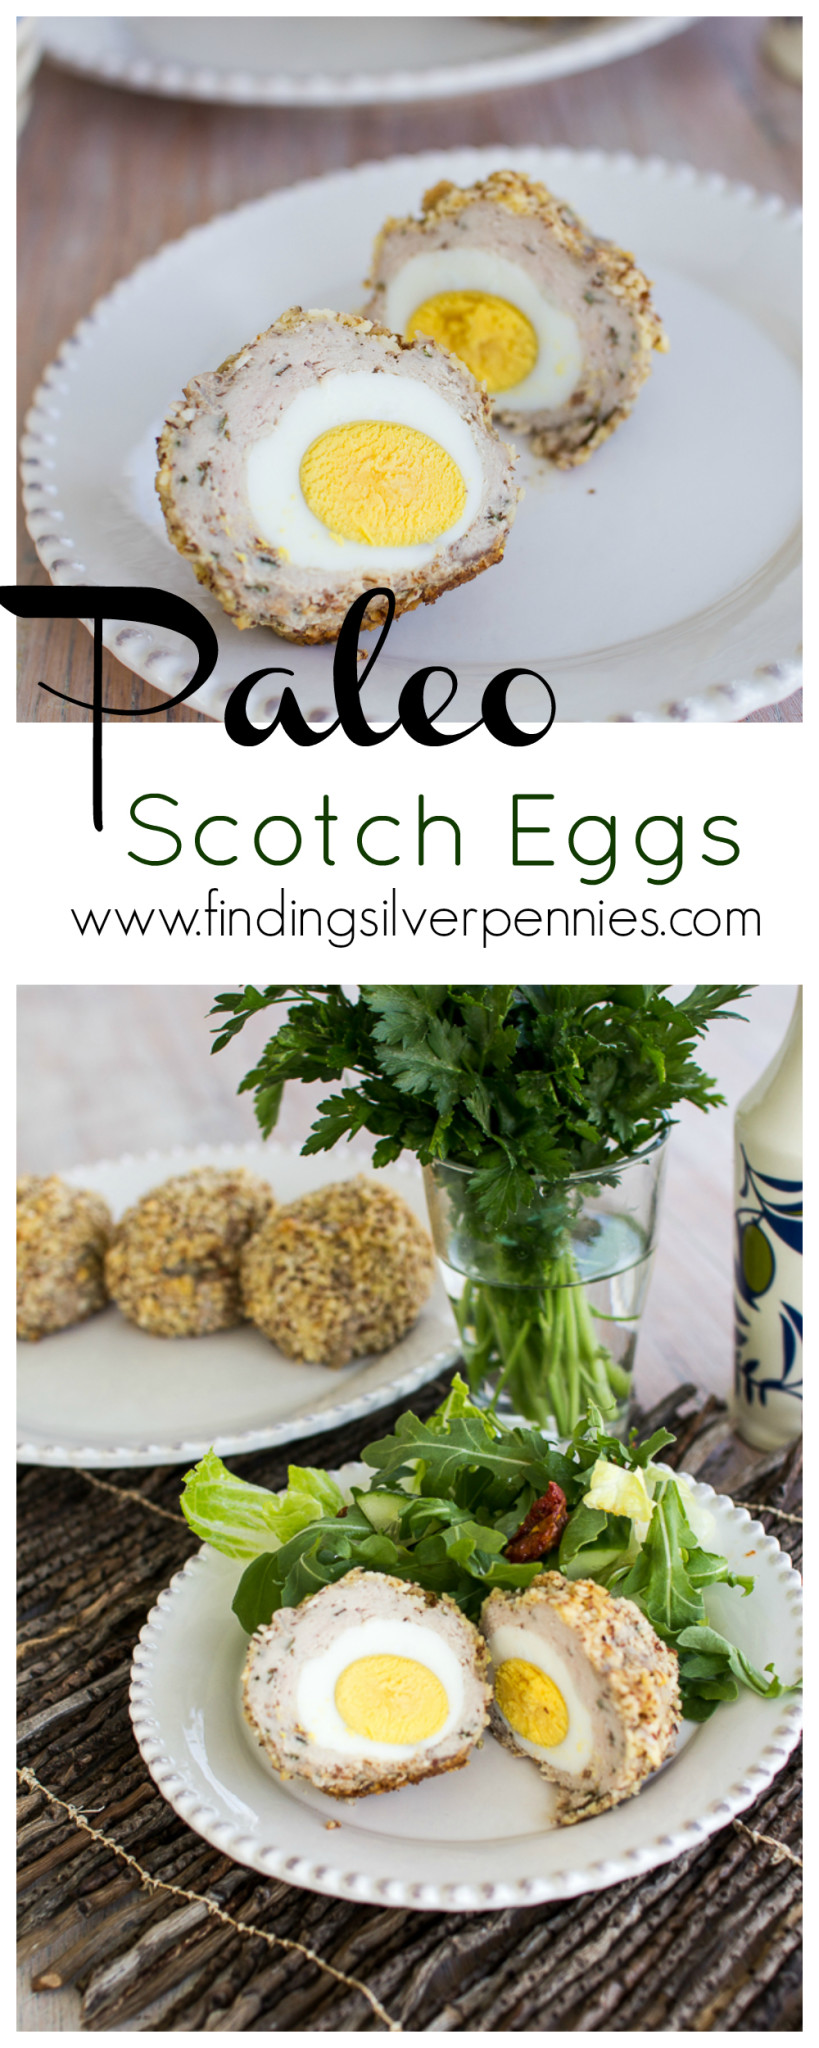 How To Make Paleo Scotch Eggs by Finding Silver Pennies